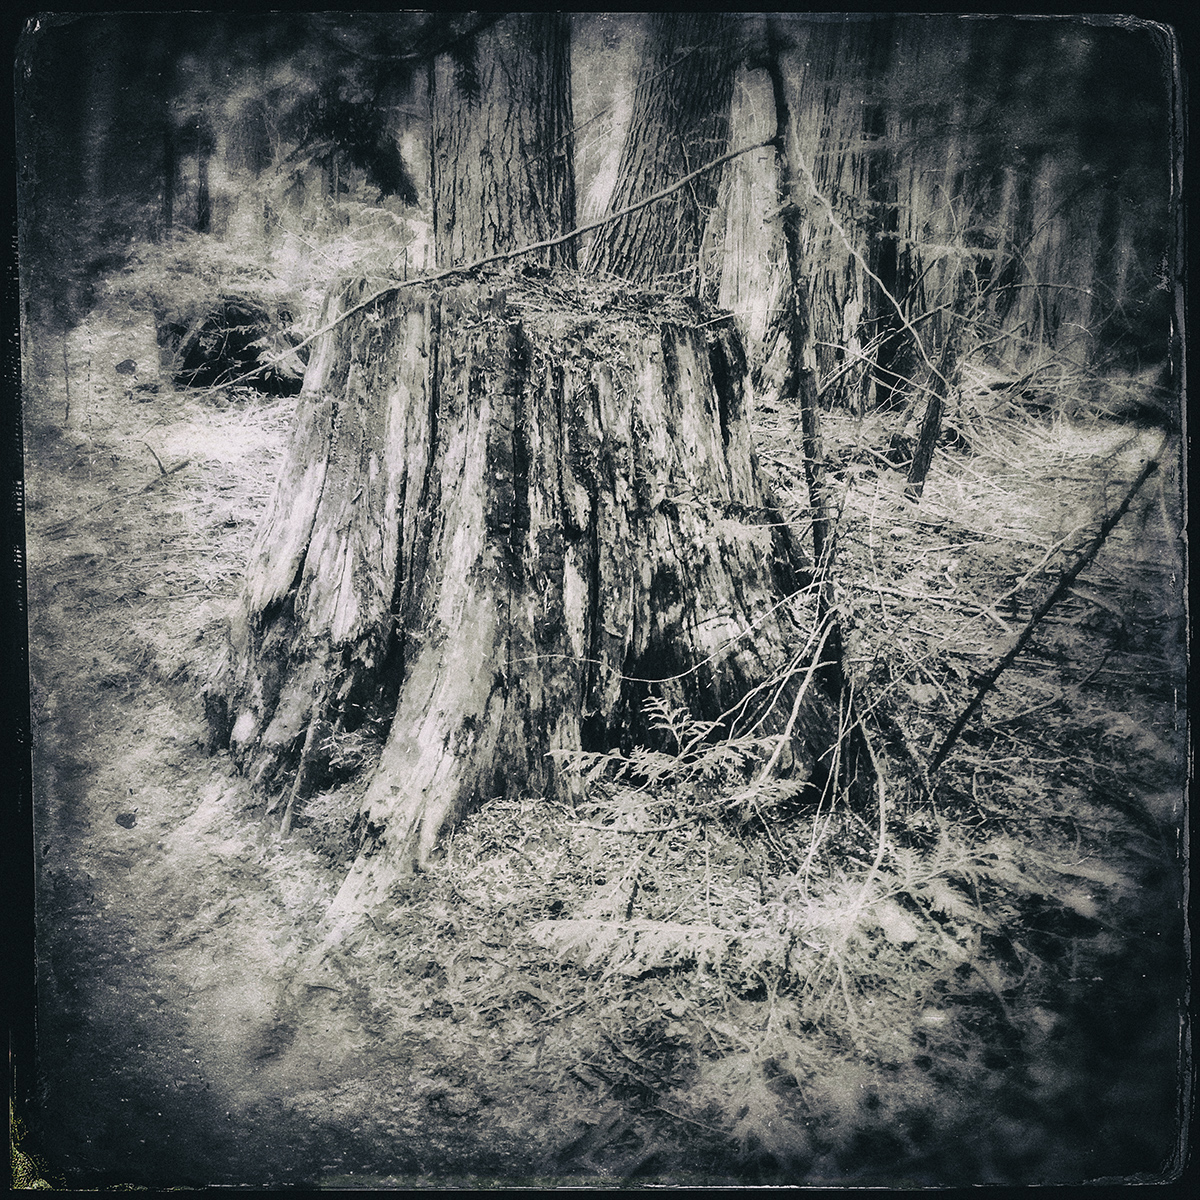 Forest of Lost Trees 12 72dpi.jpg